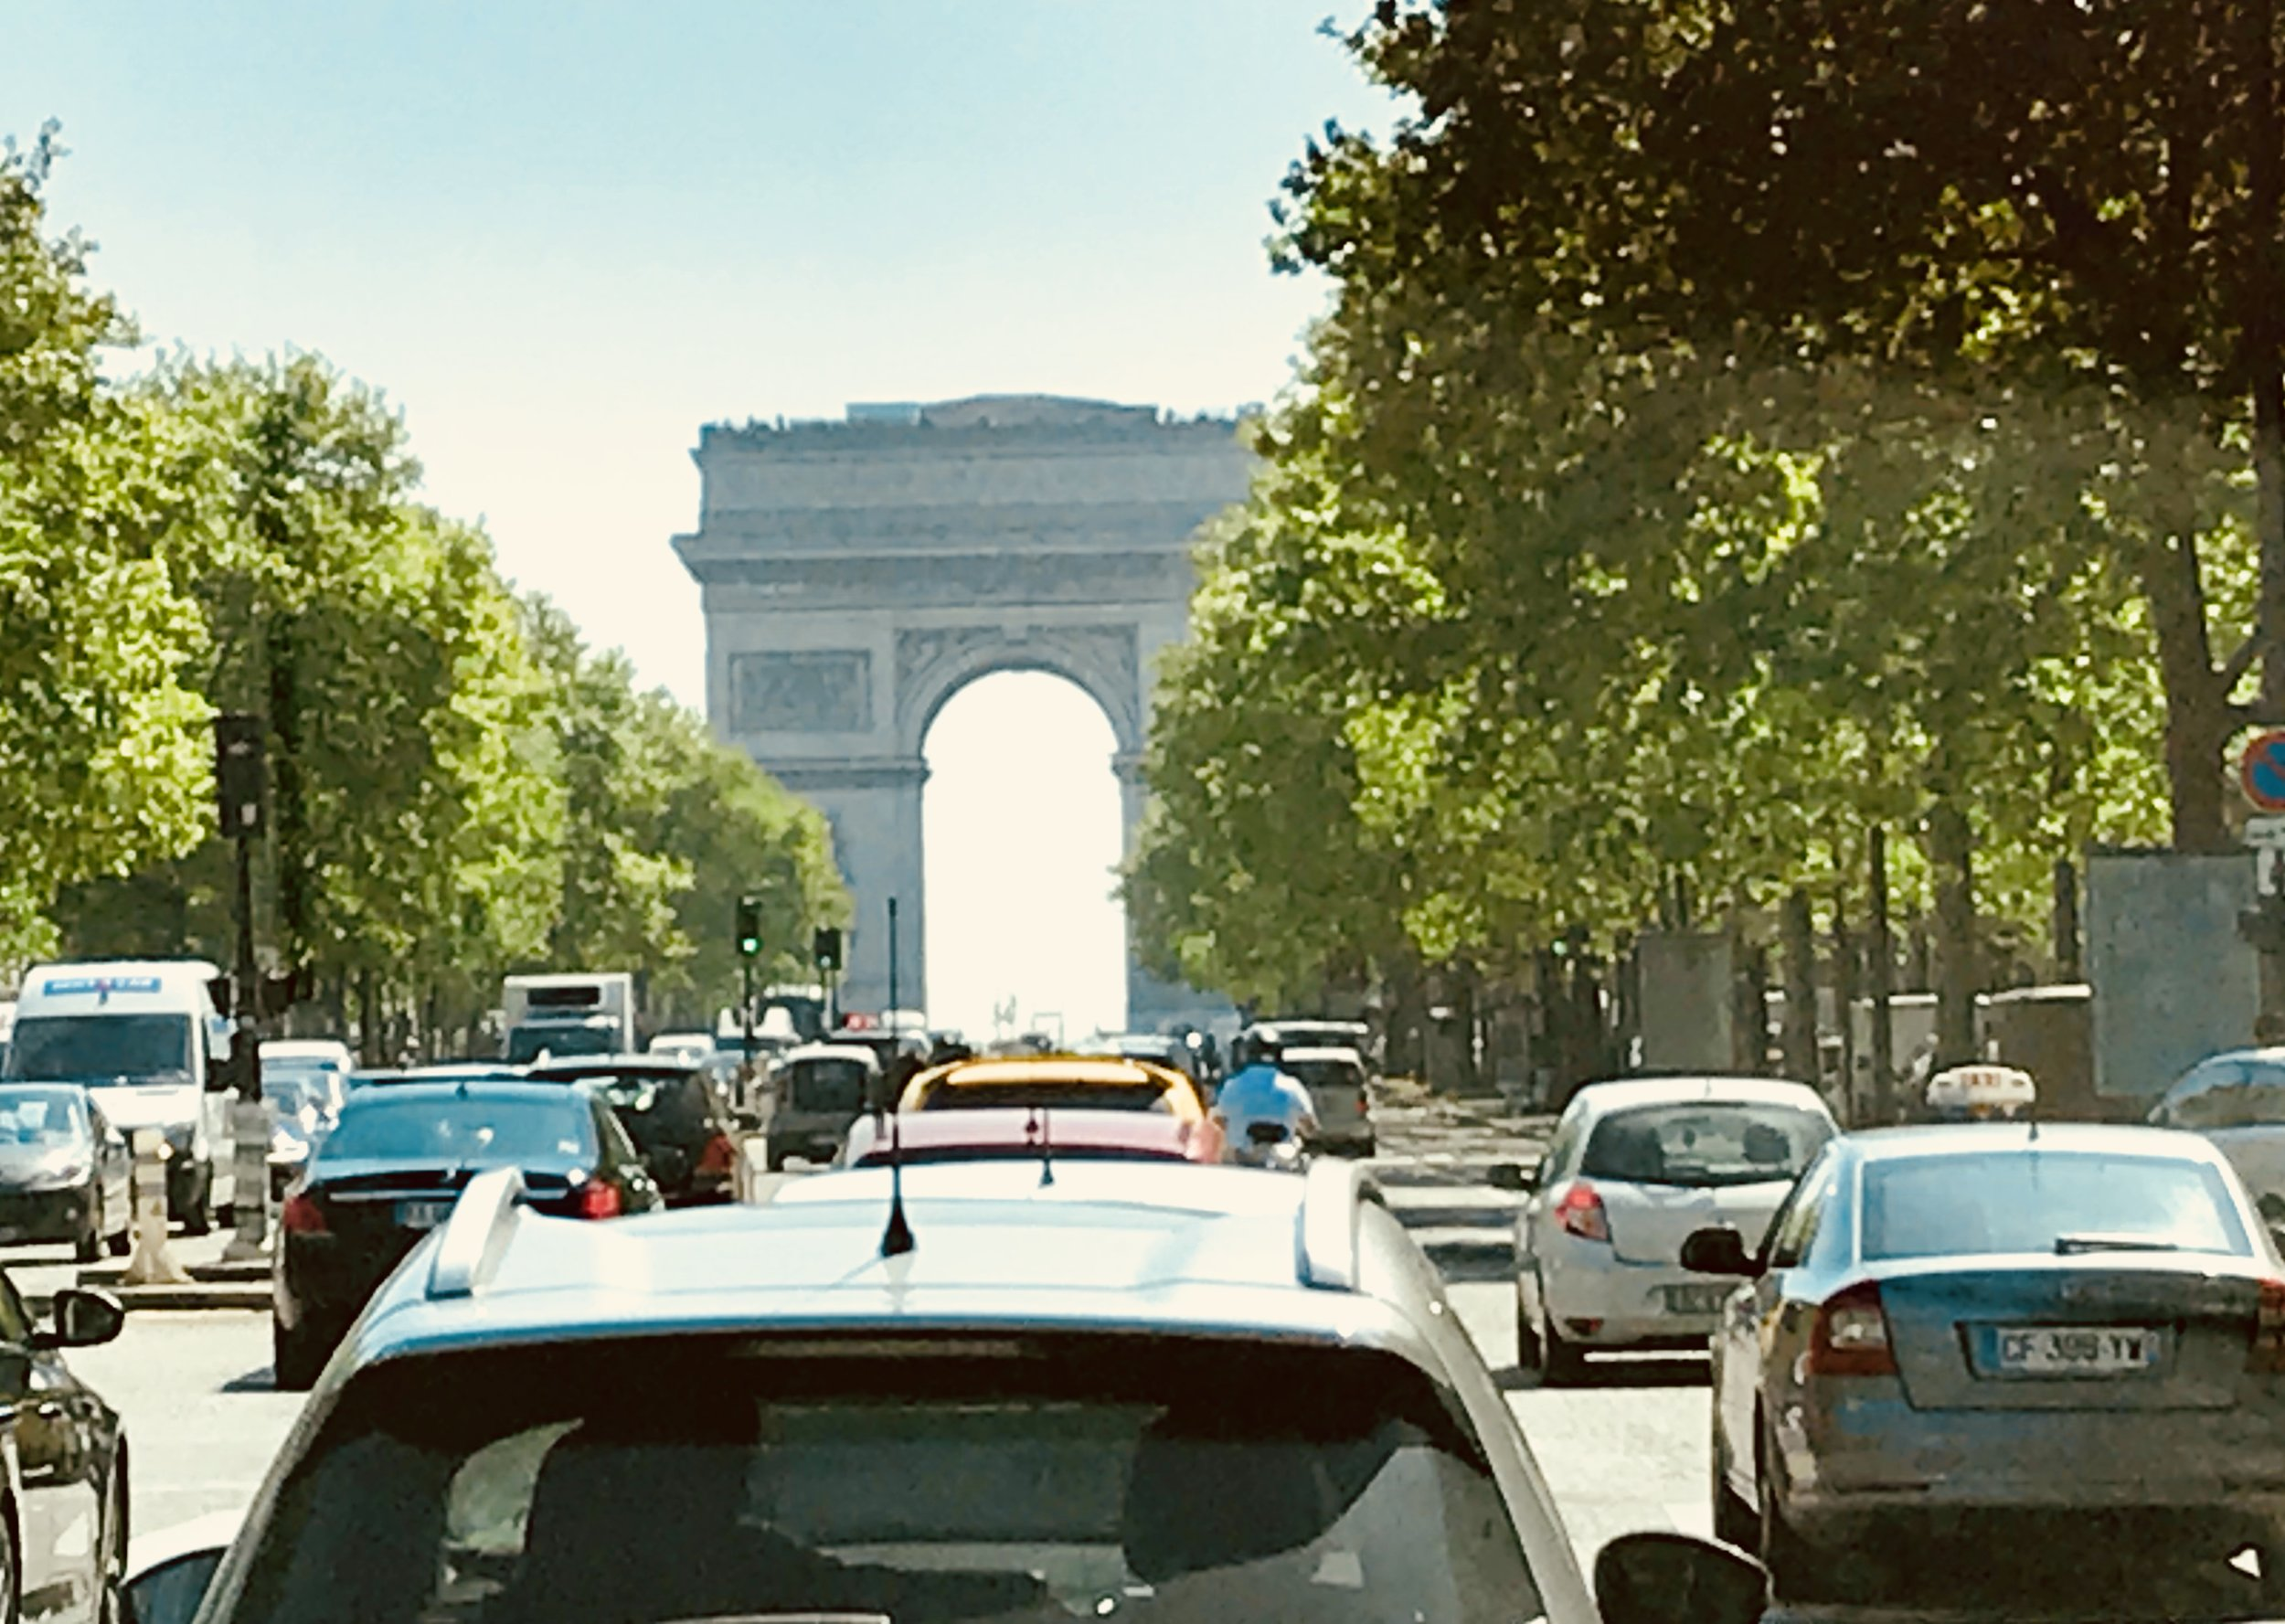 Even just driving around we were able to see some of Paris' iconic sites like the Arc de Triomphe.